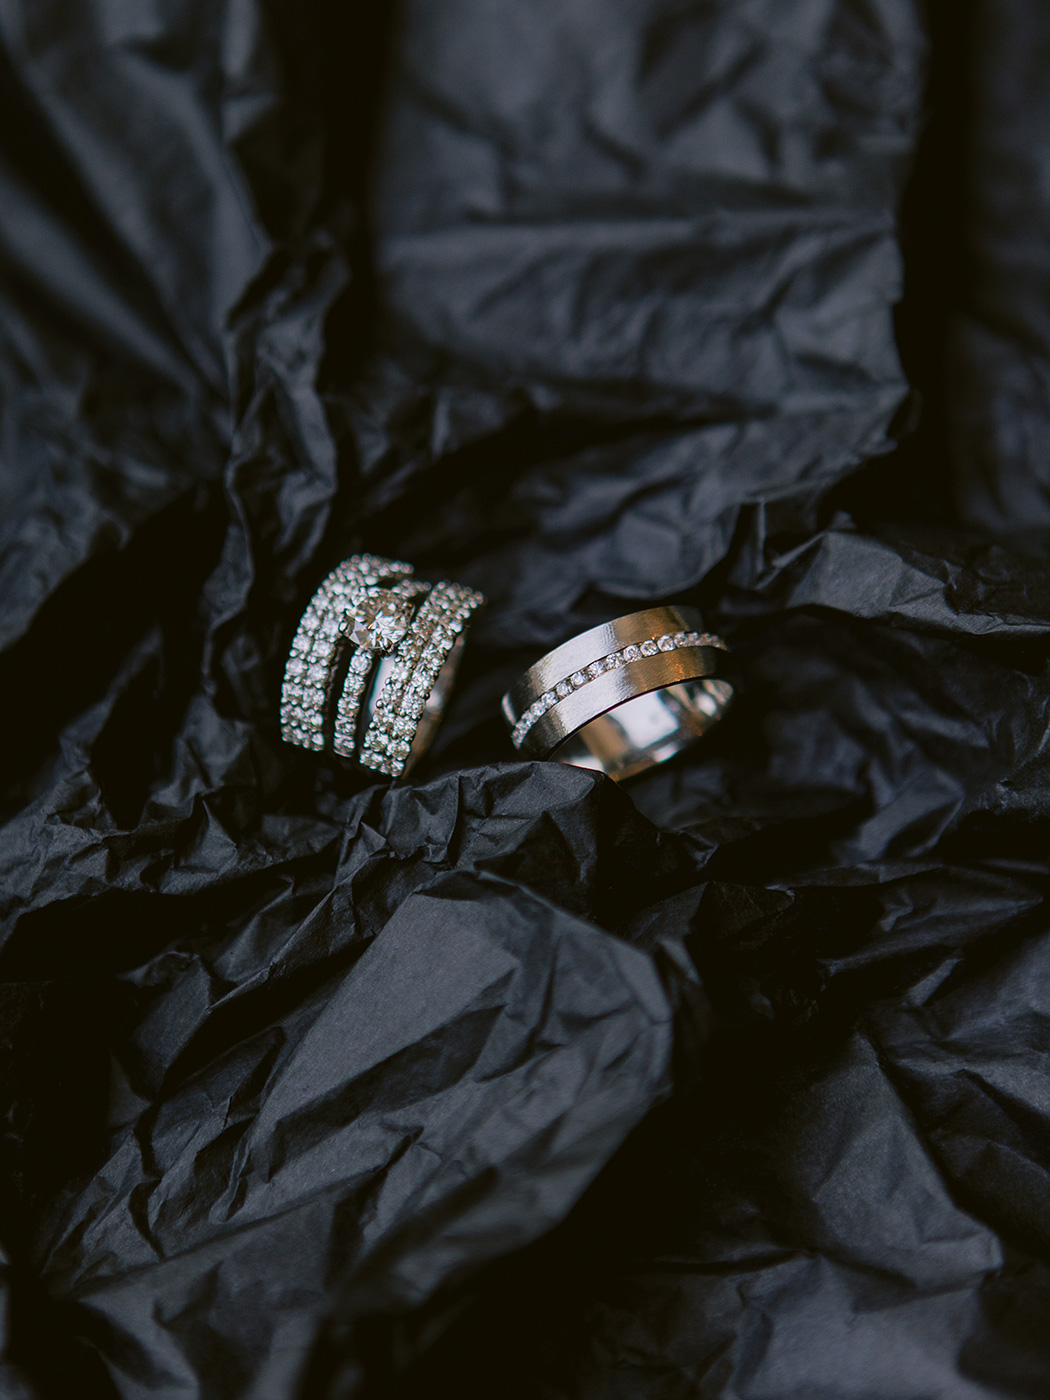 Rings | Rensche Mari Photography